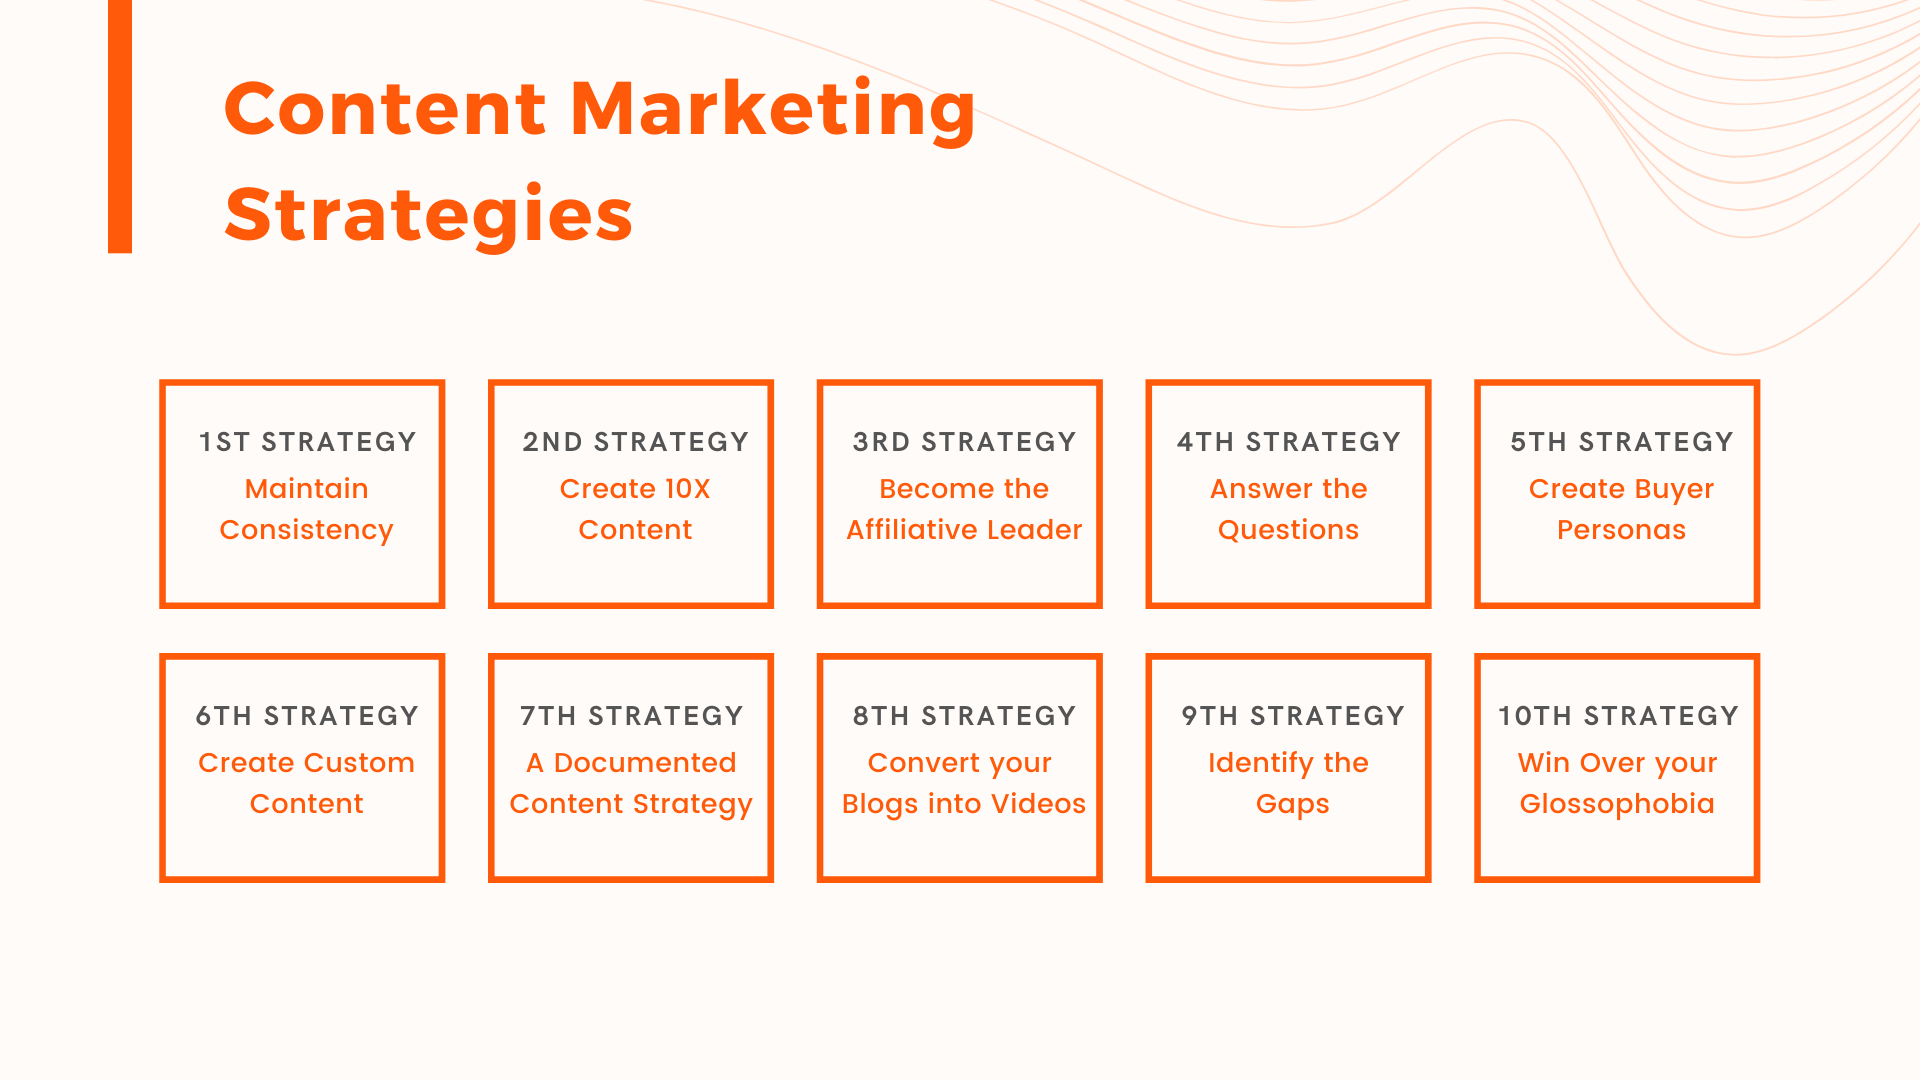 Content-marketing-startegies-by-Applied-AI-Consulting